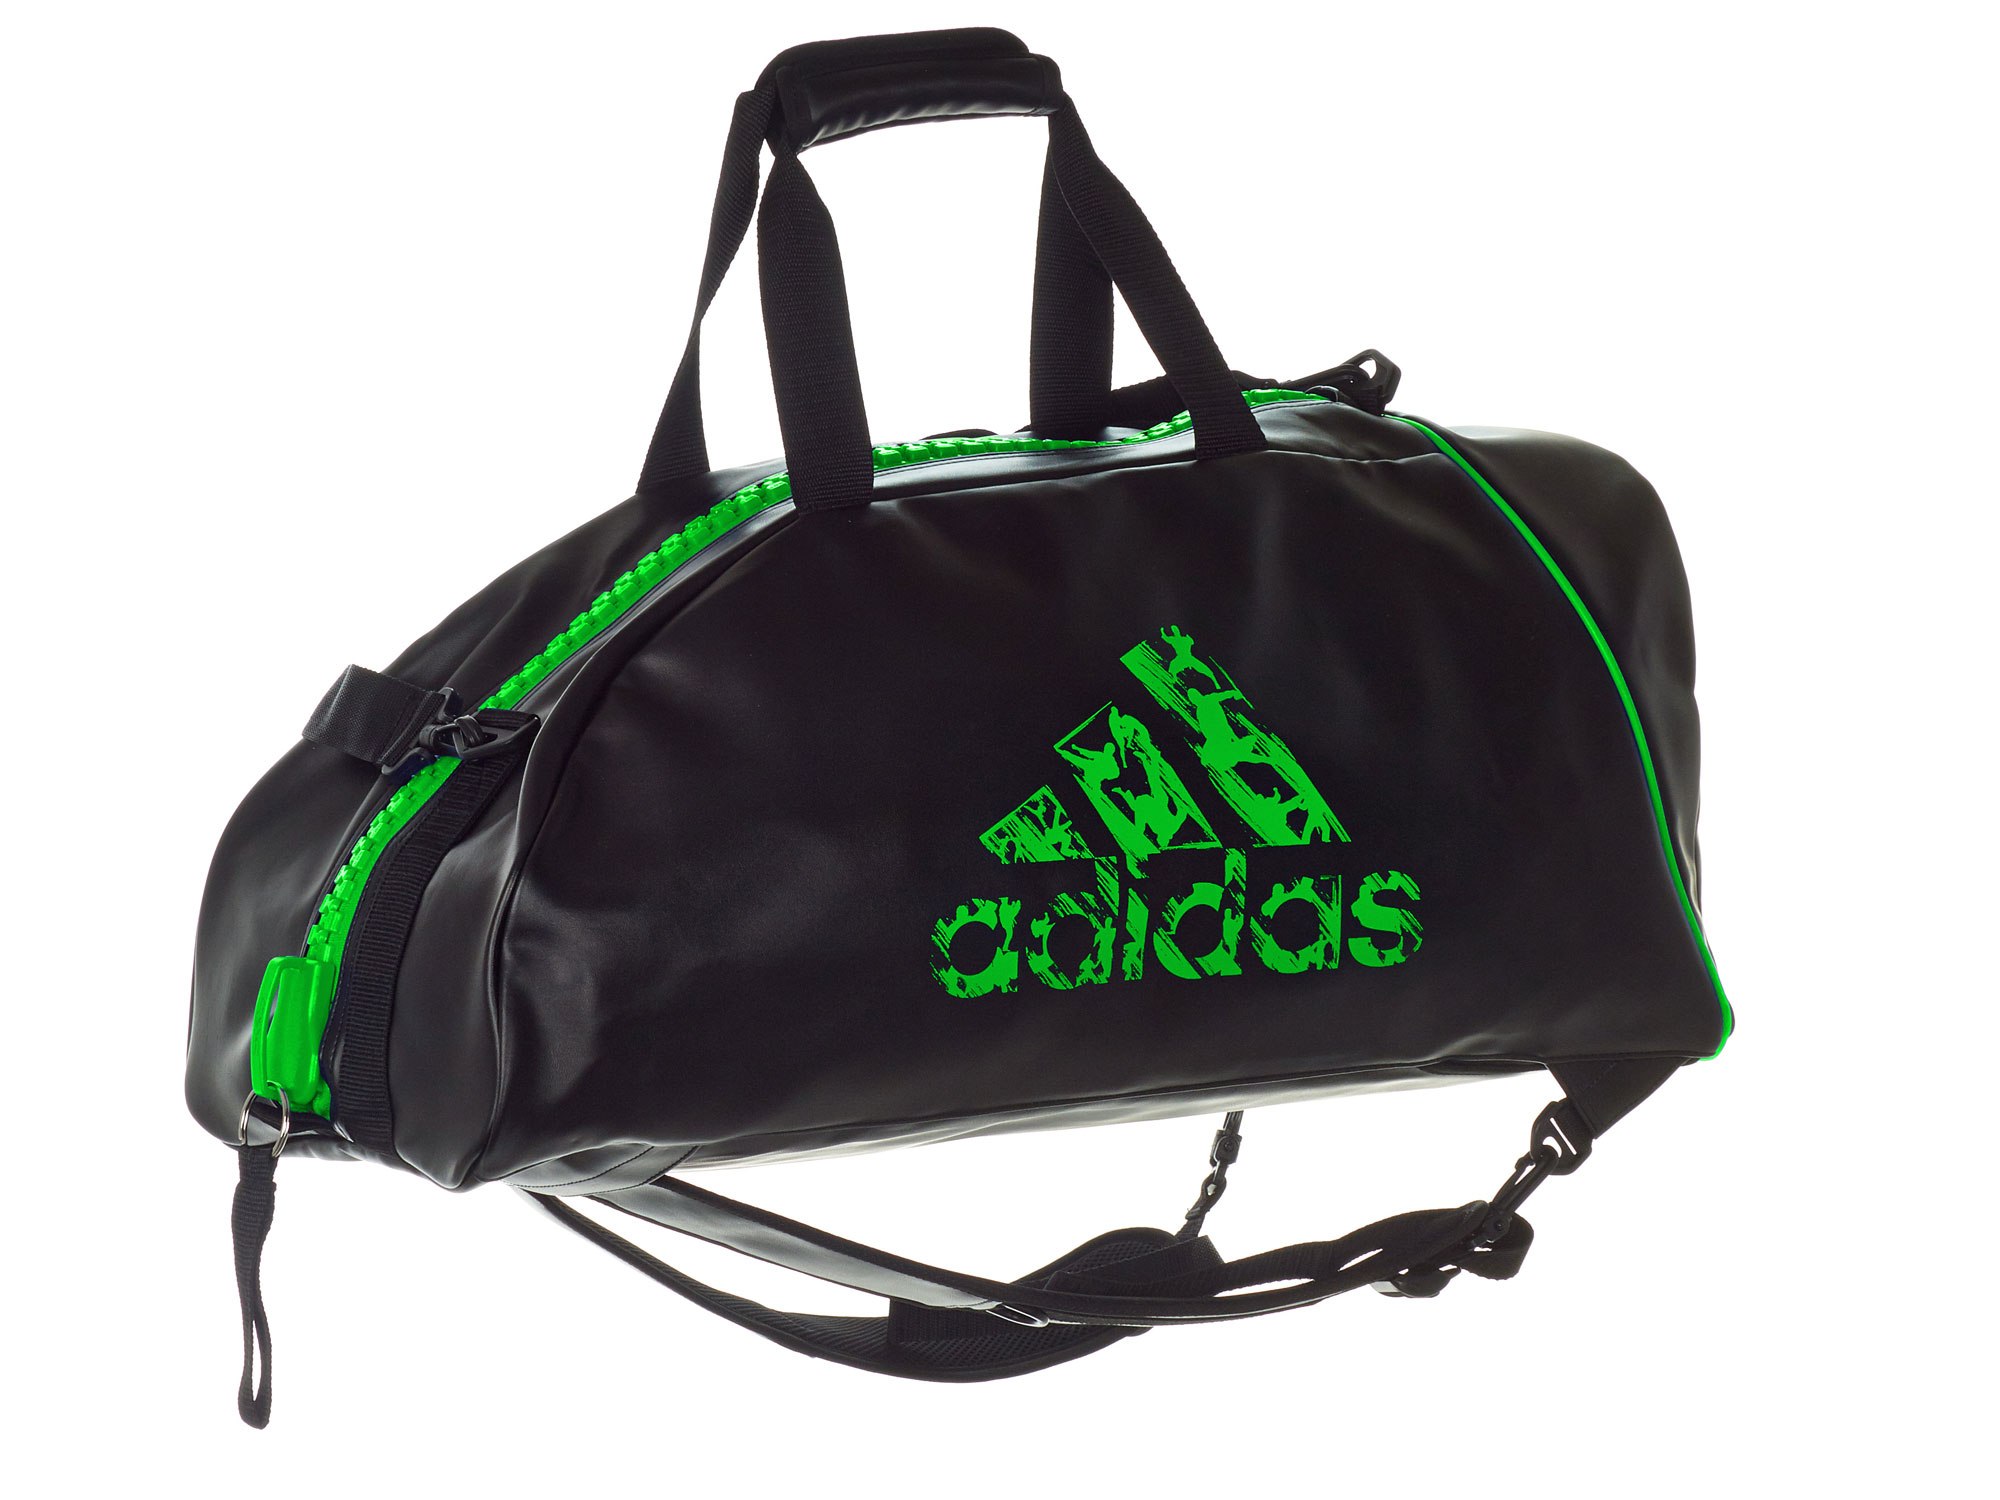 adidas rucksack tasche adiacc051 l schwarz solar green. Black Bedroom Furniture Sets. Home Design Ideas